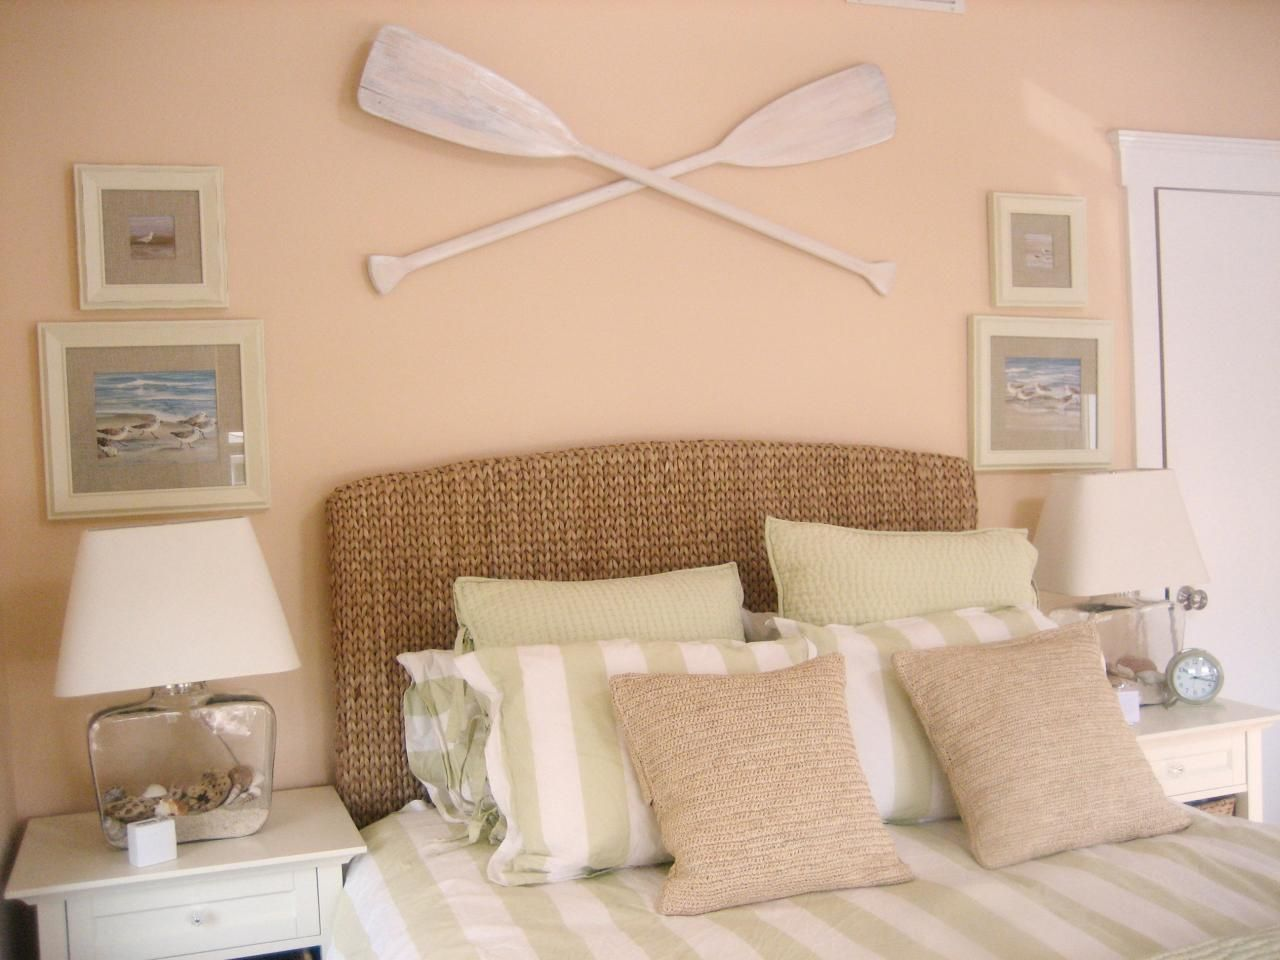 1000 images about Chloe 39 s room on Pinterest. Light Peach Bedroom